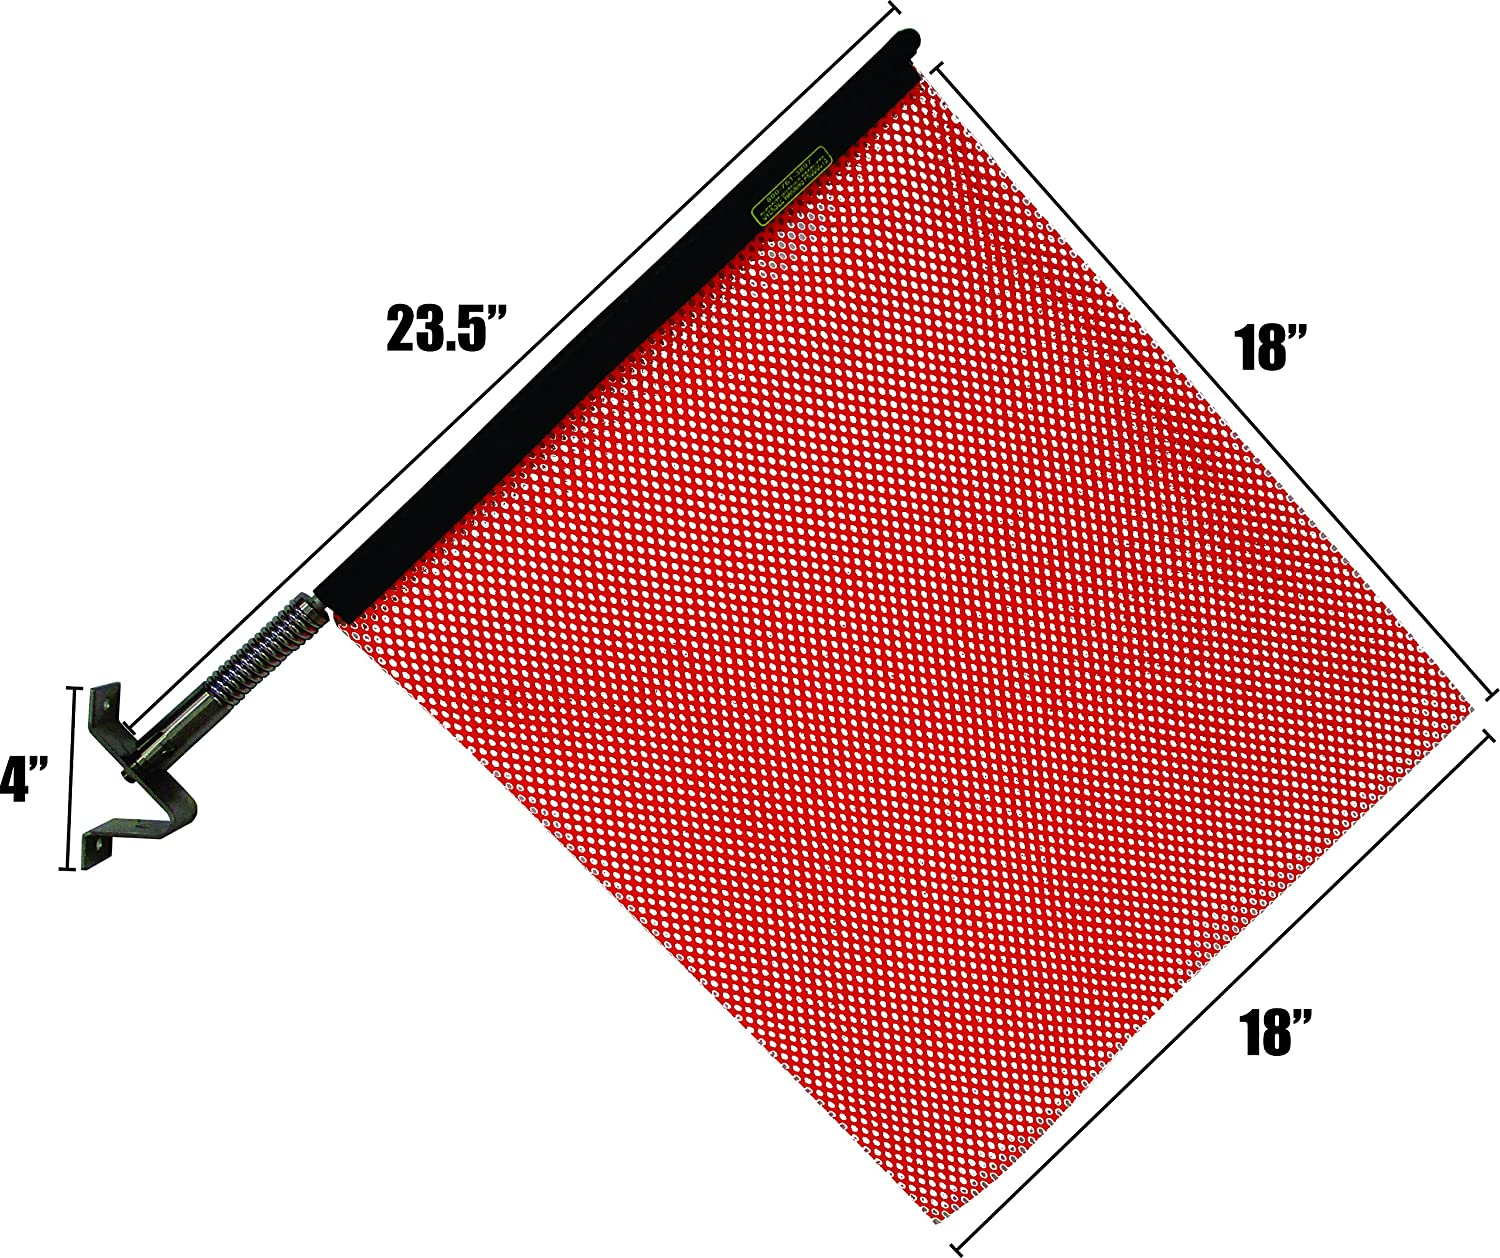 Quickmount Flag and Bracket Red, 2 Pack Warning /& Safety Flag for Truck Trailer and Pilot Cars Made in USA Oversize Warning Products